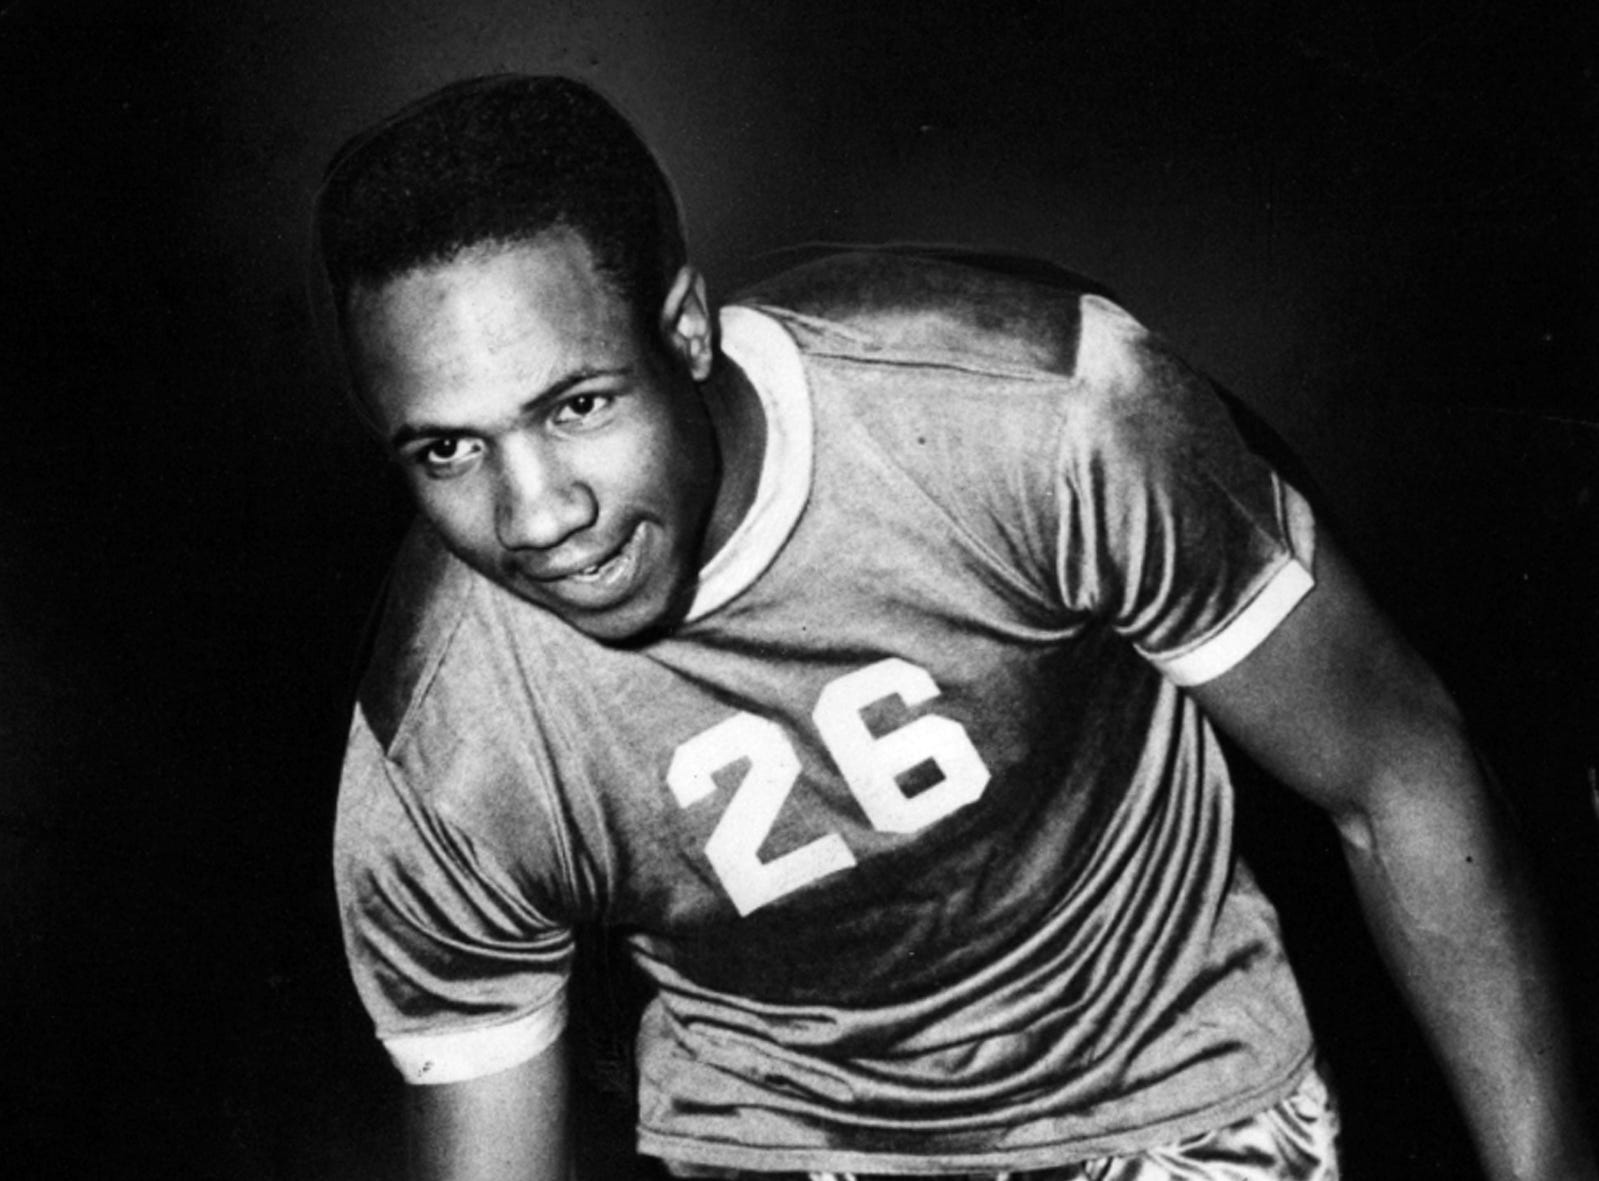 Cincinnati Reds rookie Frank Robinson is shown on the basketball court.